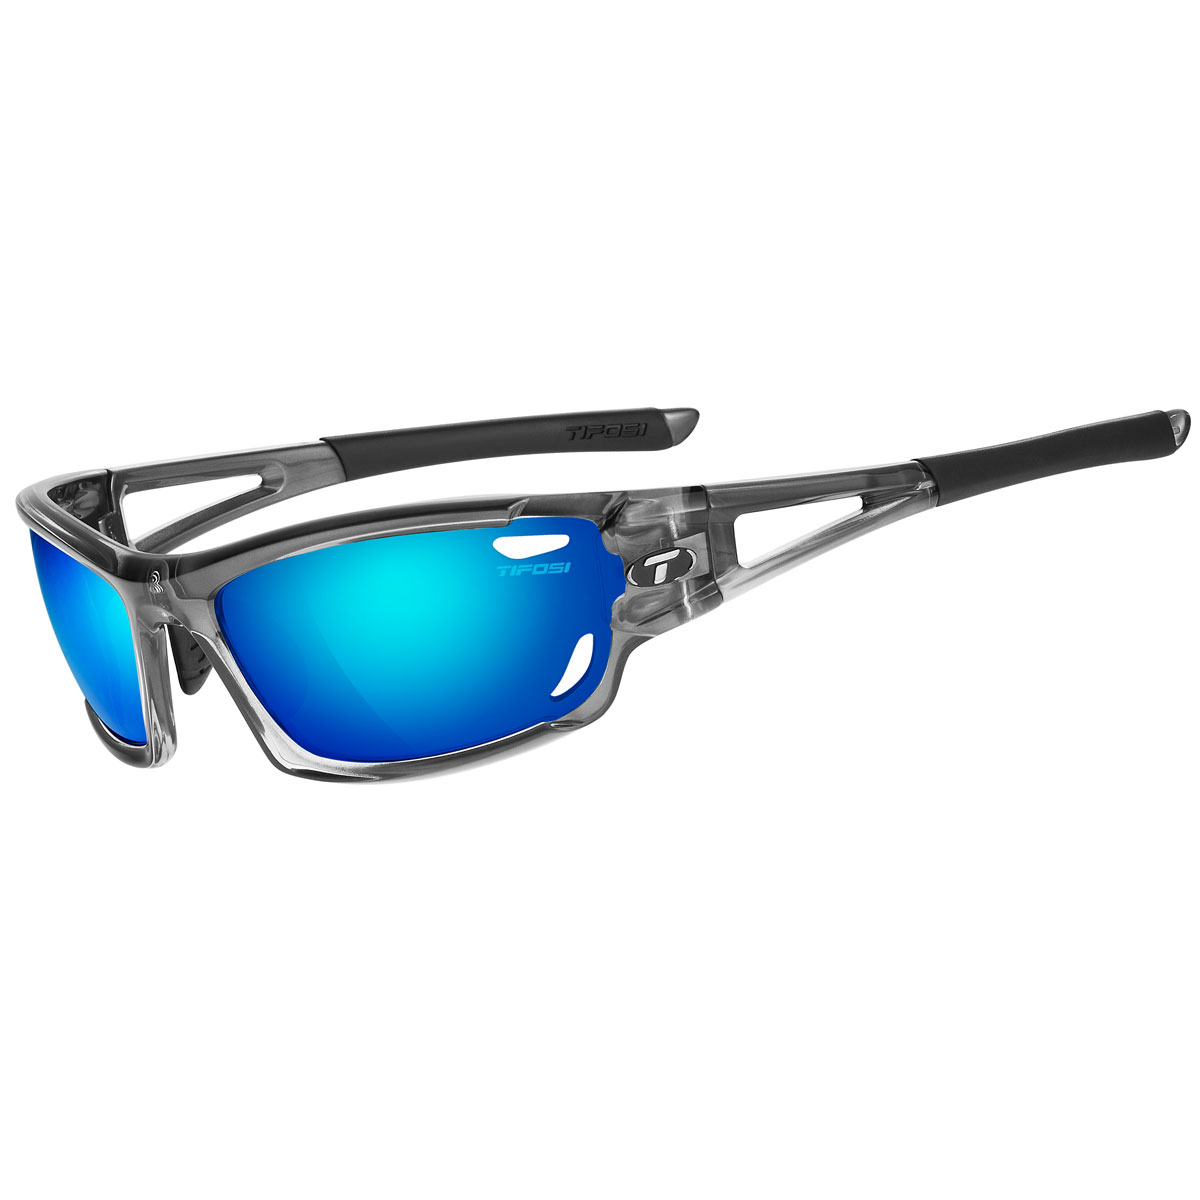 96657d98ef Tifosi DOLOMITE 2.0 Crystal Clarion Blue Polarized Sunglasses ...